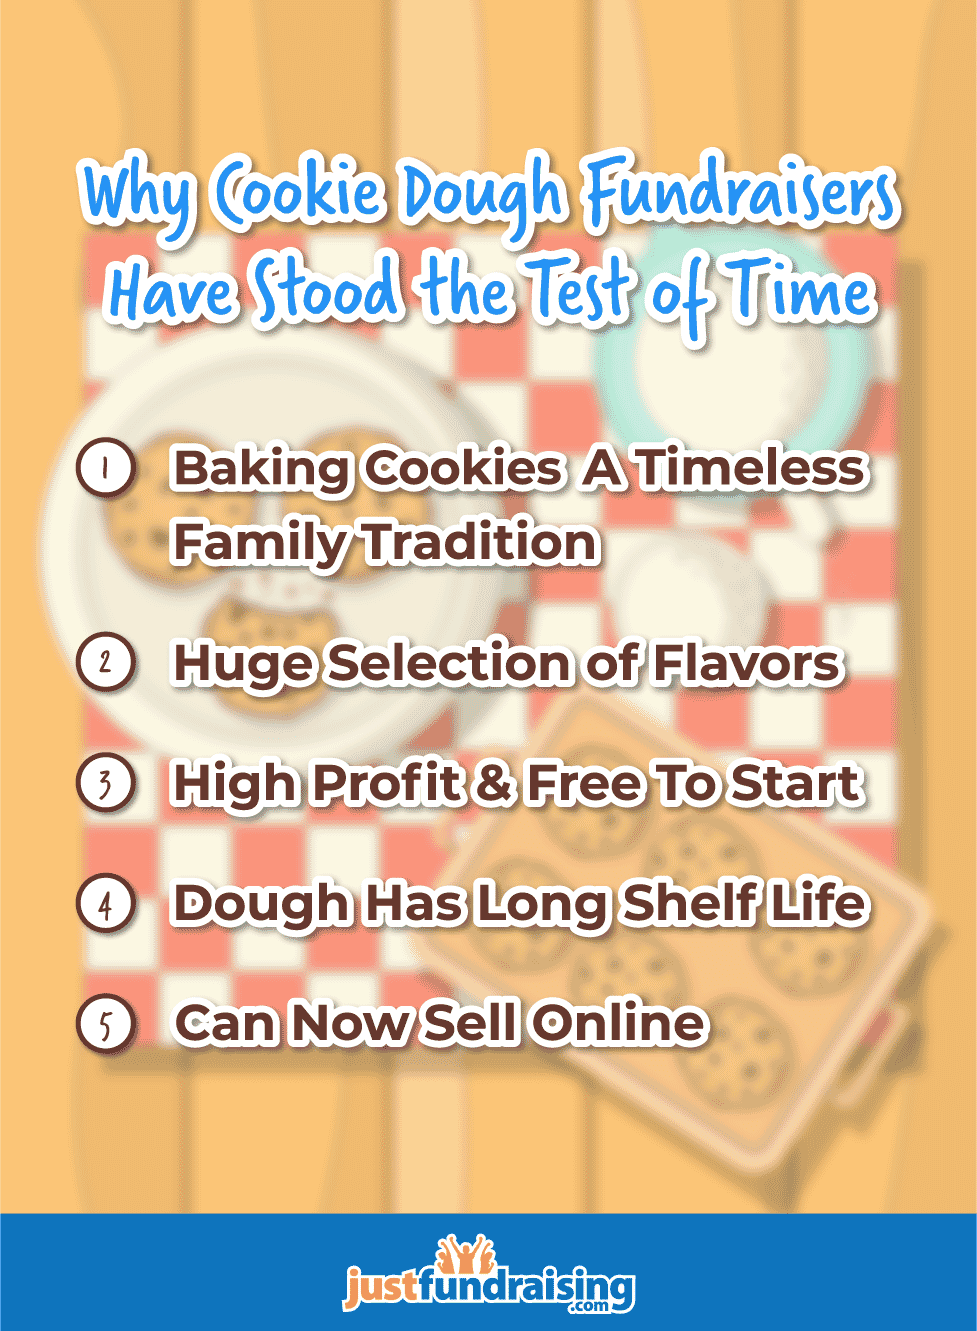 Time tested cookie dough fundraisers